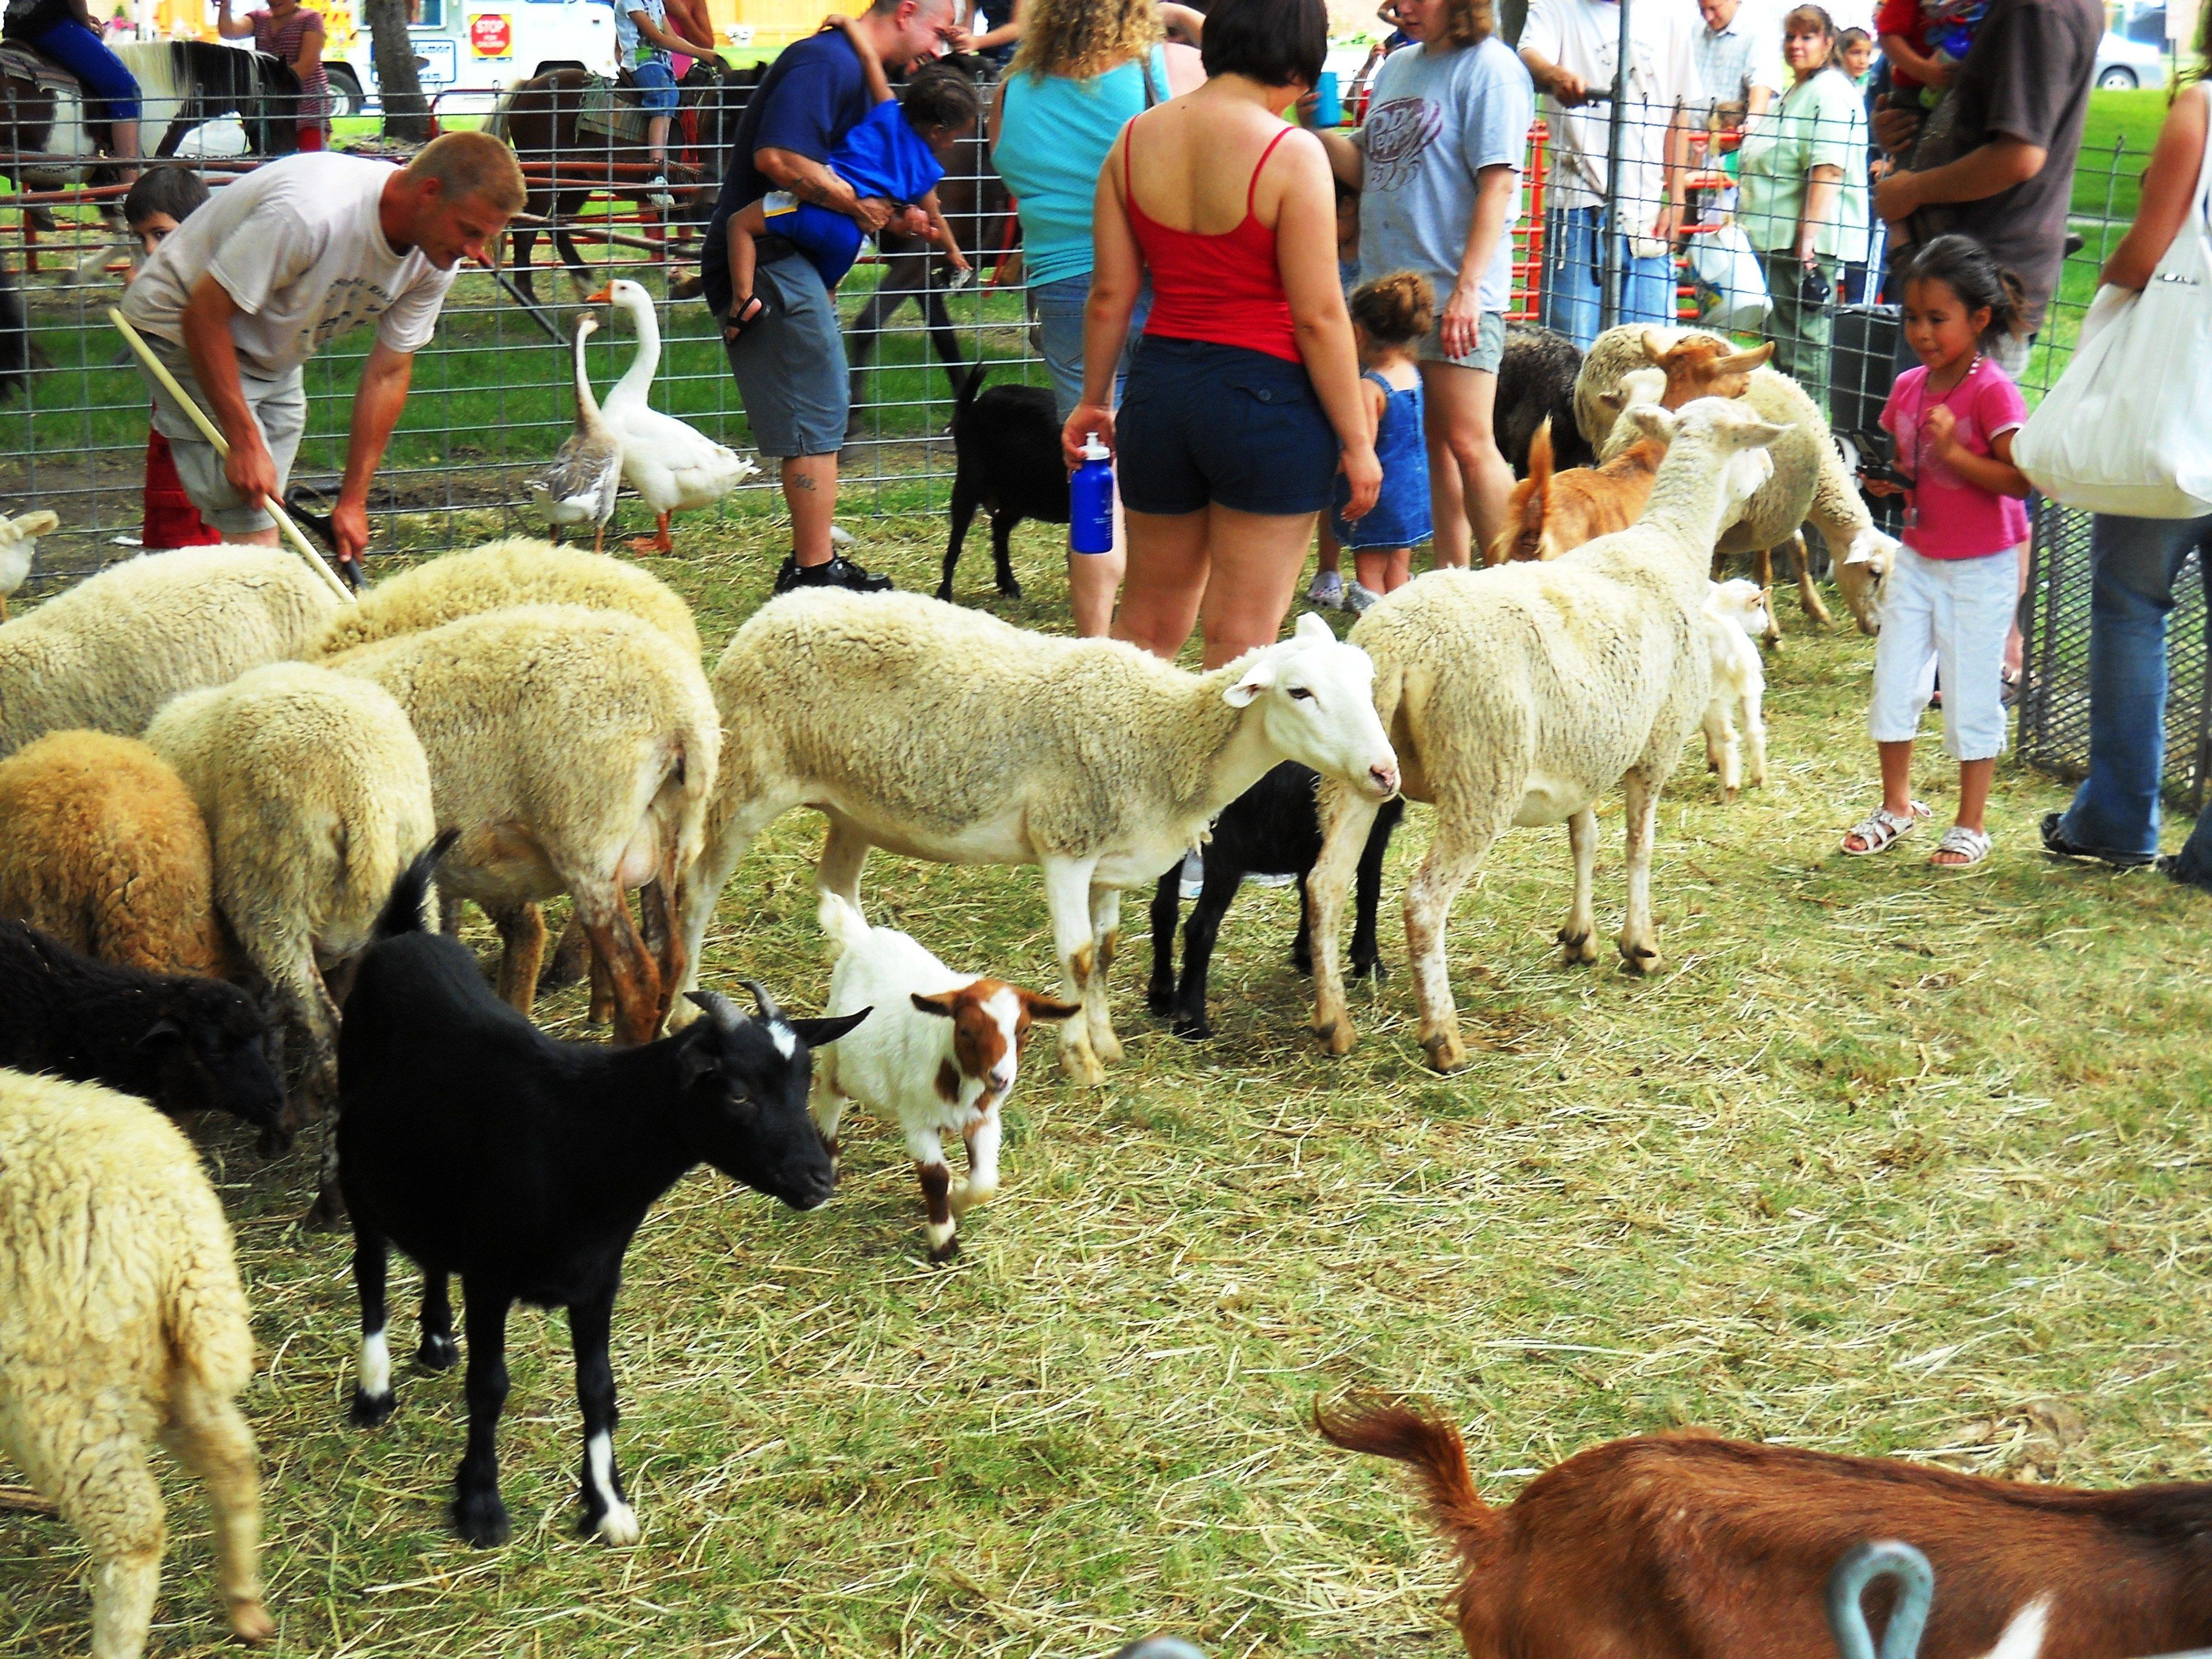 Petting Zoo Chicago Party Rentals Event coordinator